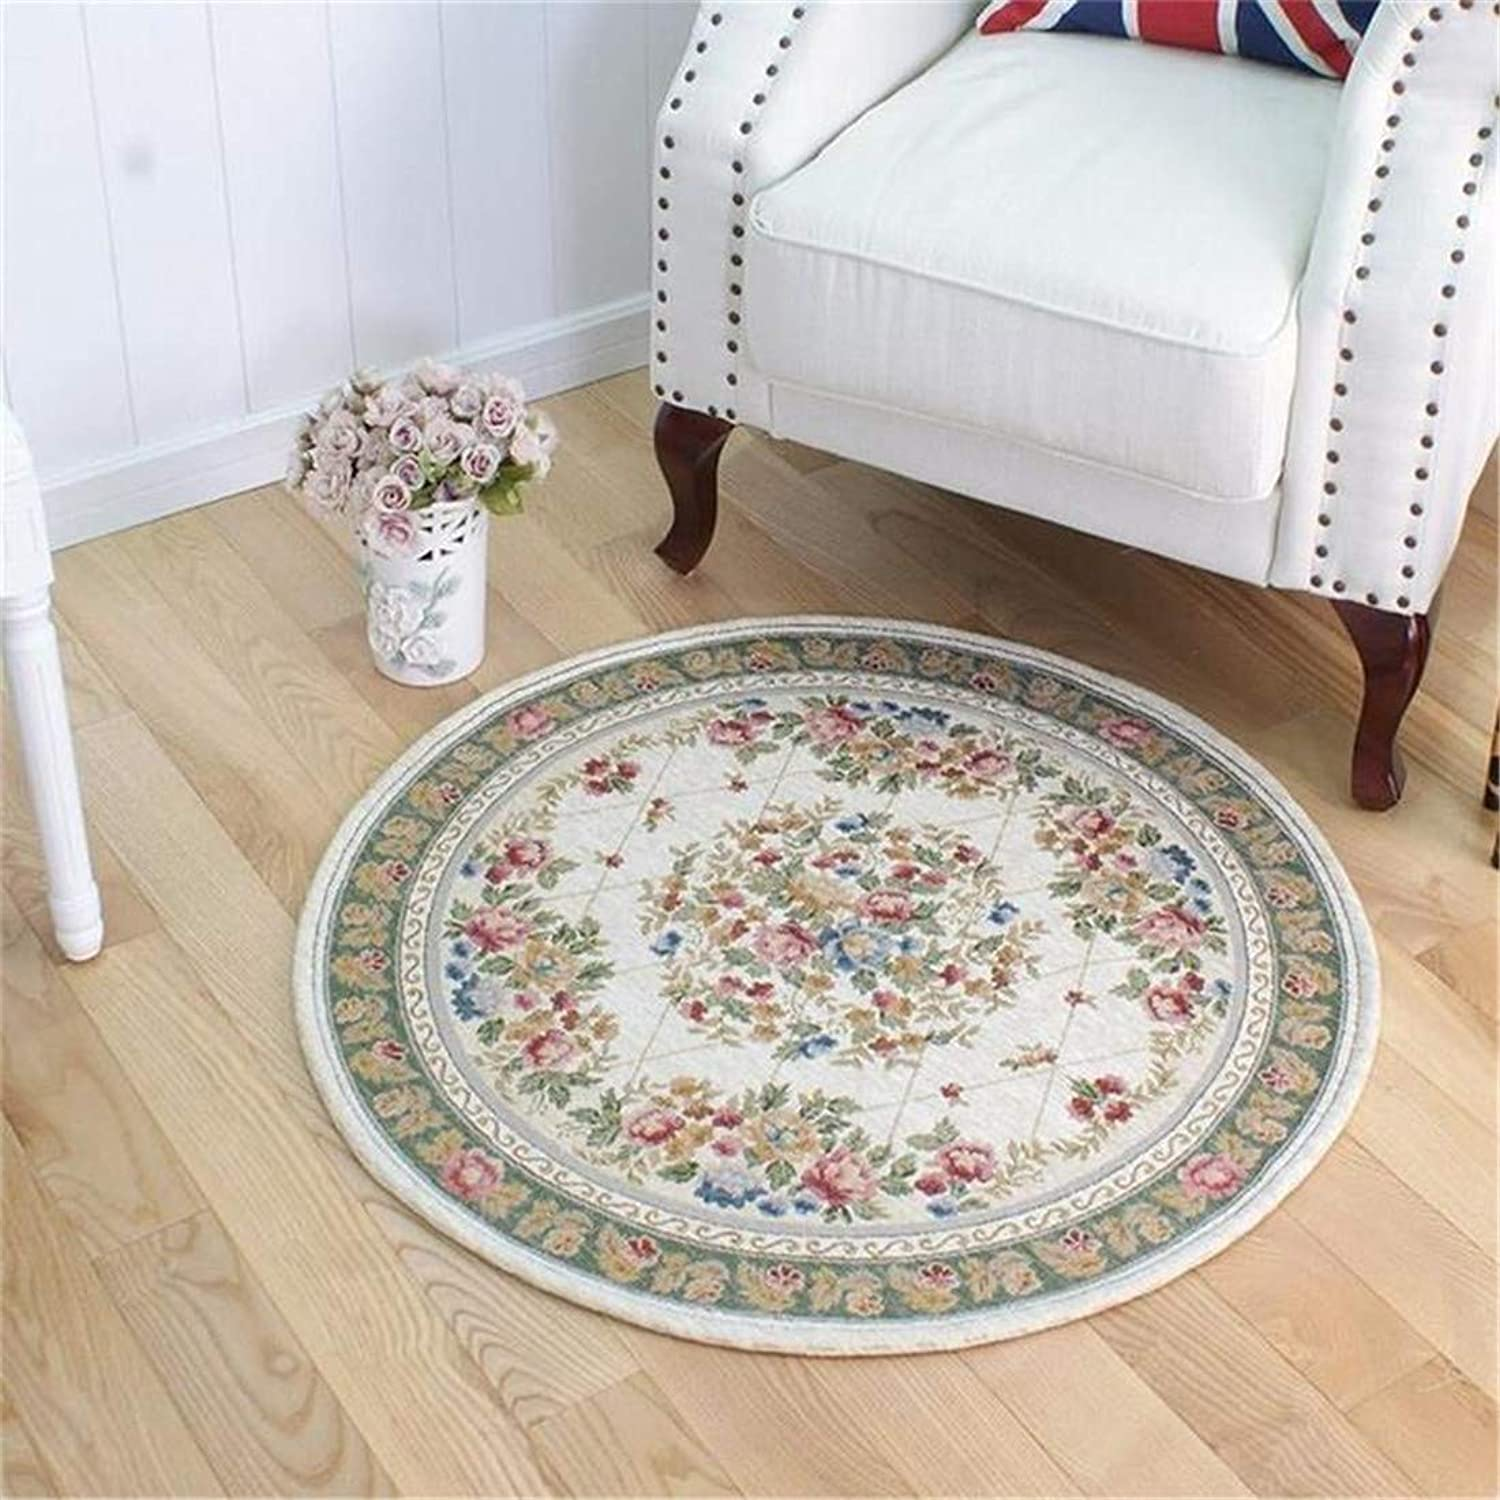 JONARO Round European Pastoral Carpets for Living Room Home Entrance Hallway Doormat Computer Chair Area Rug Exercise Yoga Mat